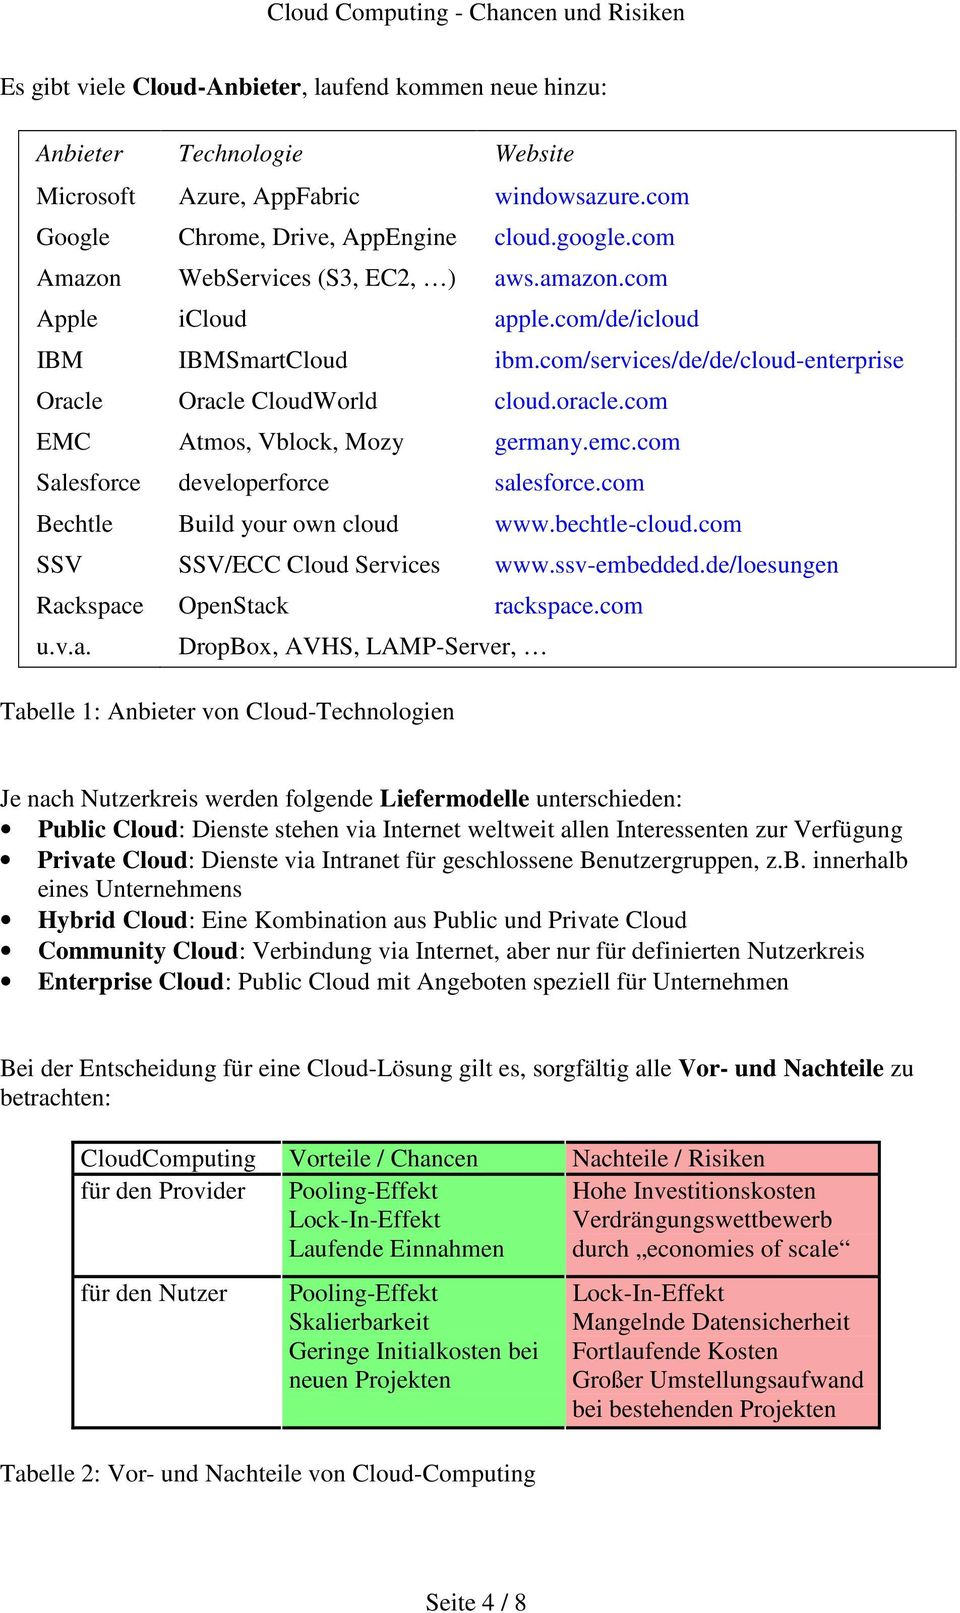 com EMC Atmos, Vblock, Mozy germany.emc.com Salesforce developerforce salesforce.com Bechtle Build your own cloud www.bechtle-cloud.com SSV SSV/ECC Cloud Services www.ssv-embedded.